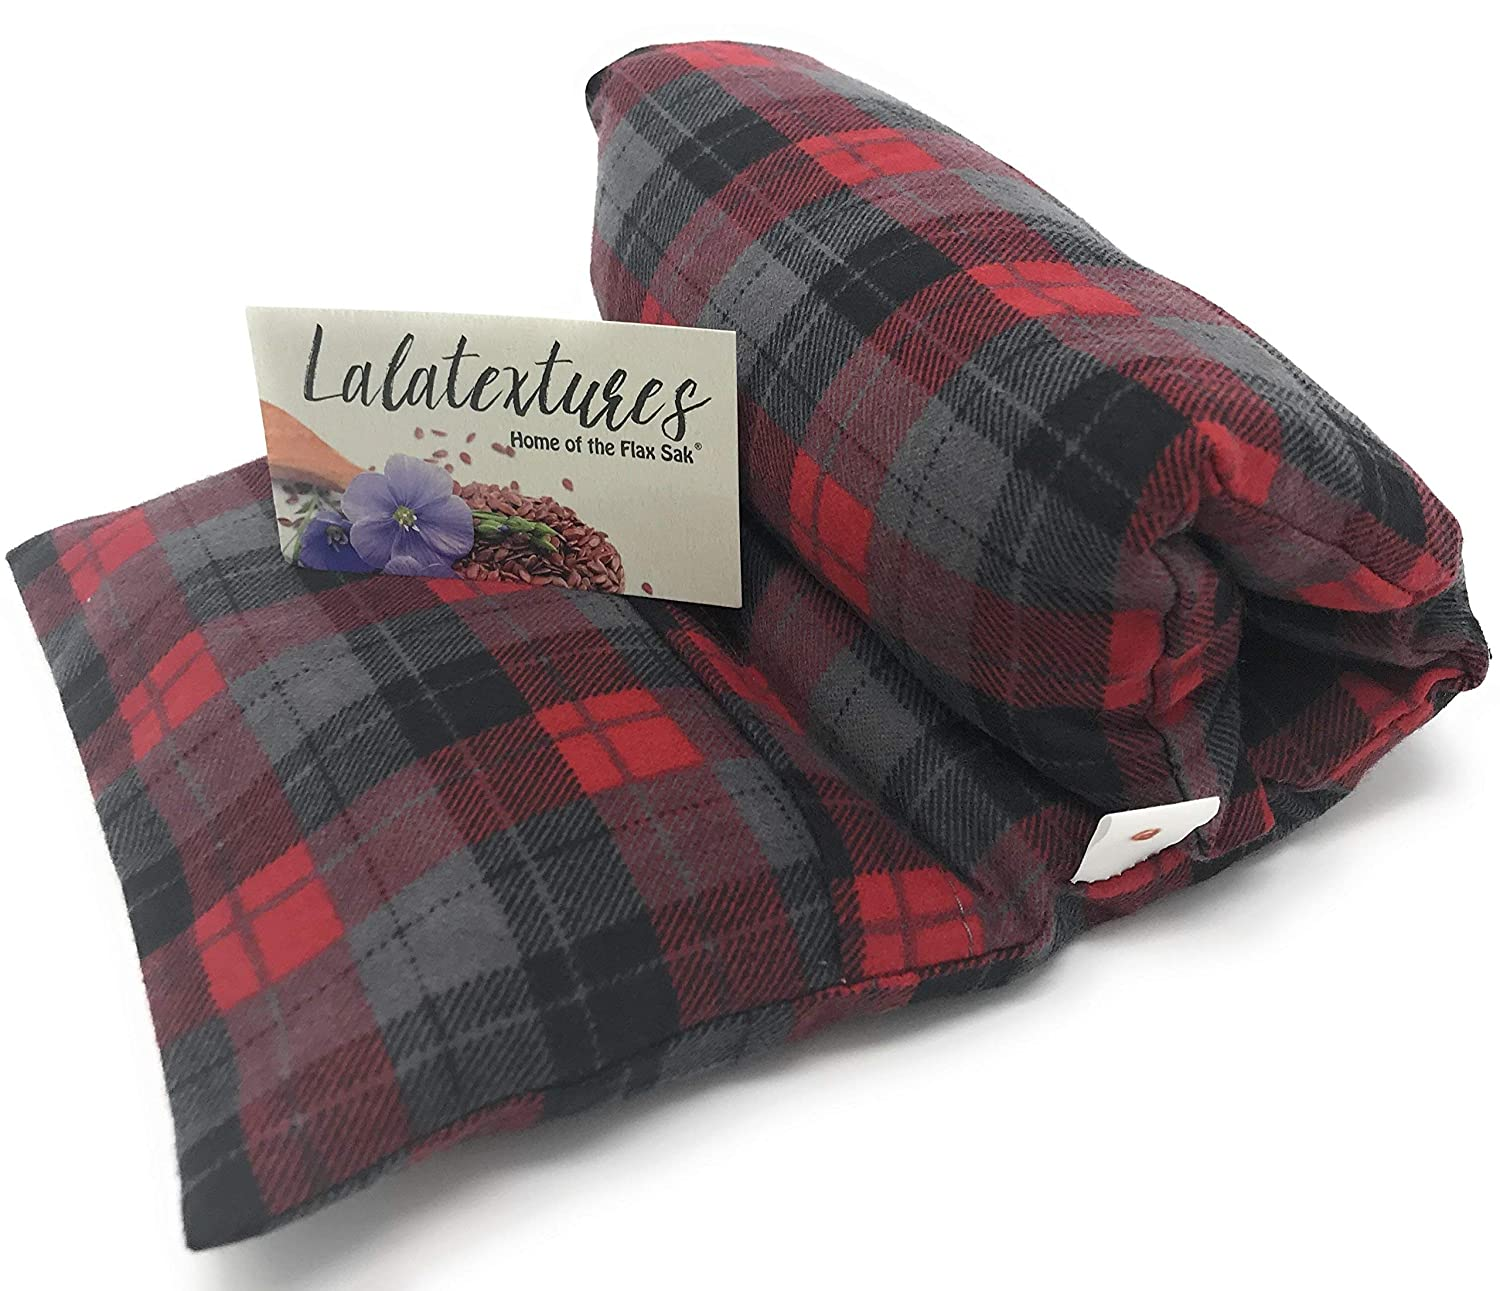 Unscented Large Microwave Heating Pad With Washable Cover | Flax Sak | Hot and Cold Pack | Christmas Red and Charcoal Grey